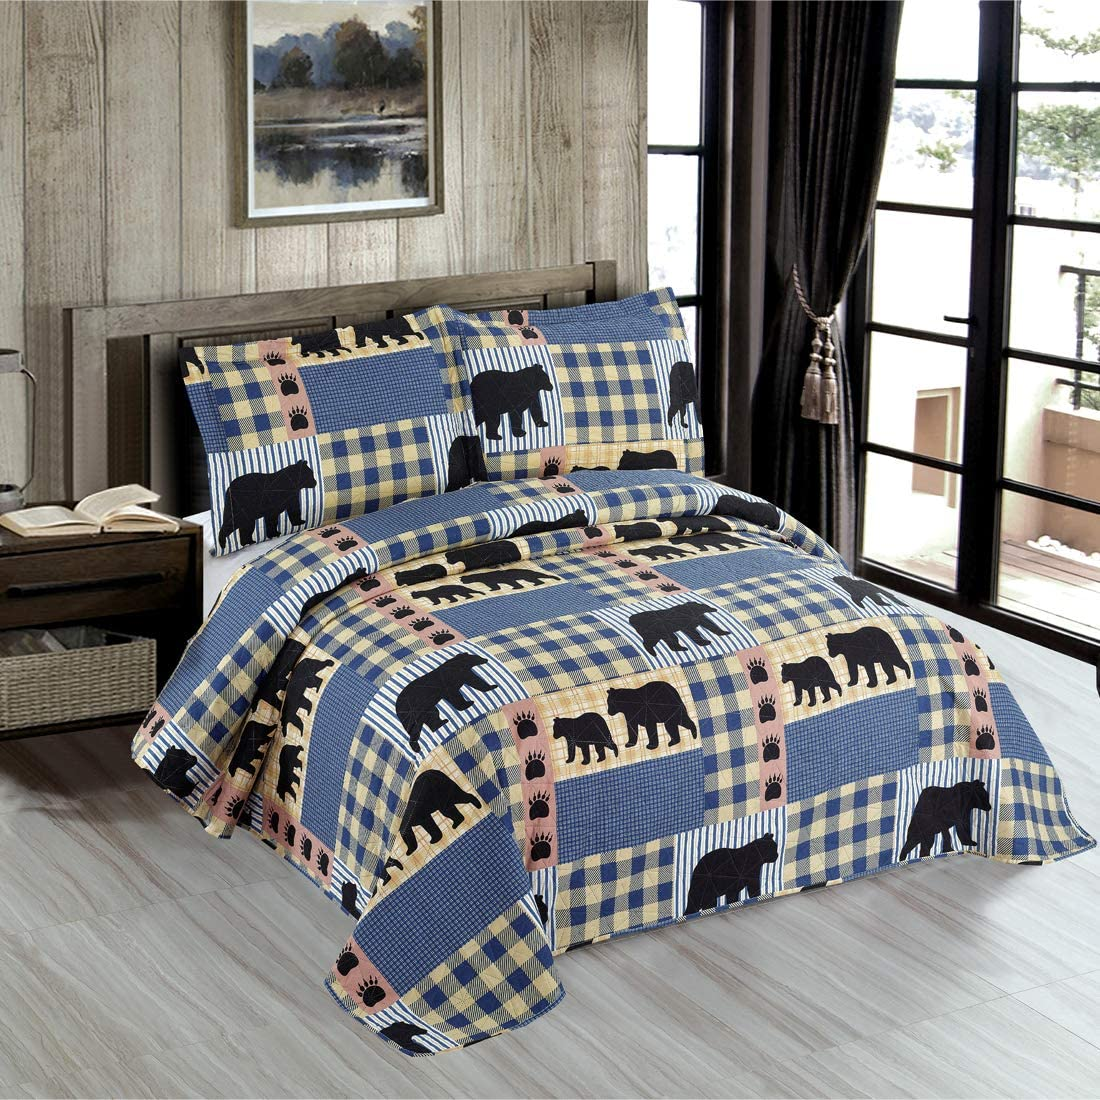 Oliven Lodge Bear Bedding Quilt Full/Queen Size Blue White Plaid Bedspread Set Rustic Quilts Forest Bear Blanket Cabin Coverlet Summer Lightweight Bear Daybed Cover Woodland Home Decor